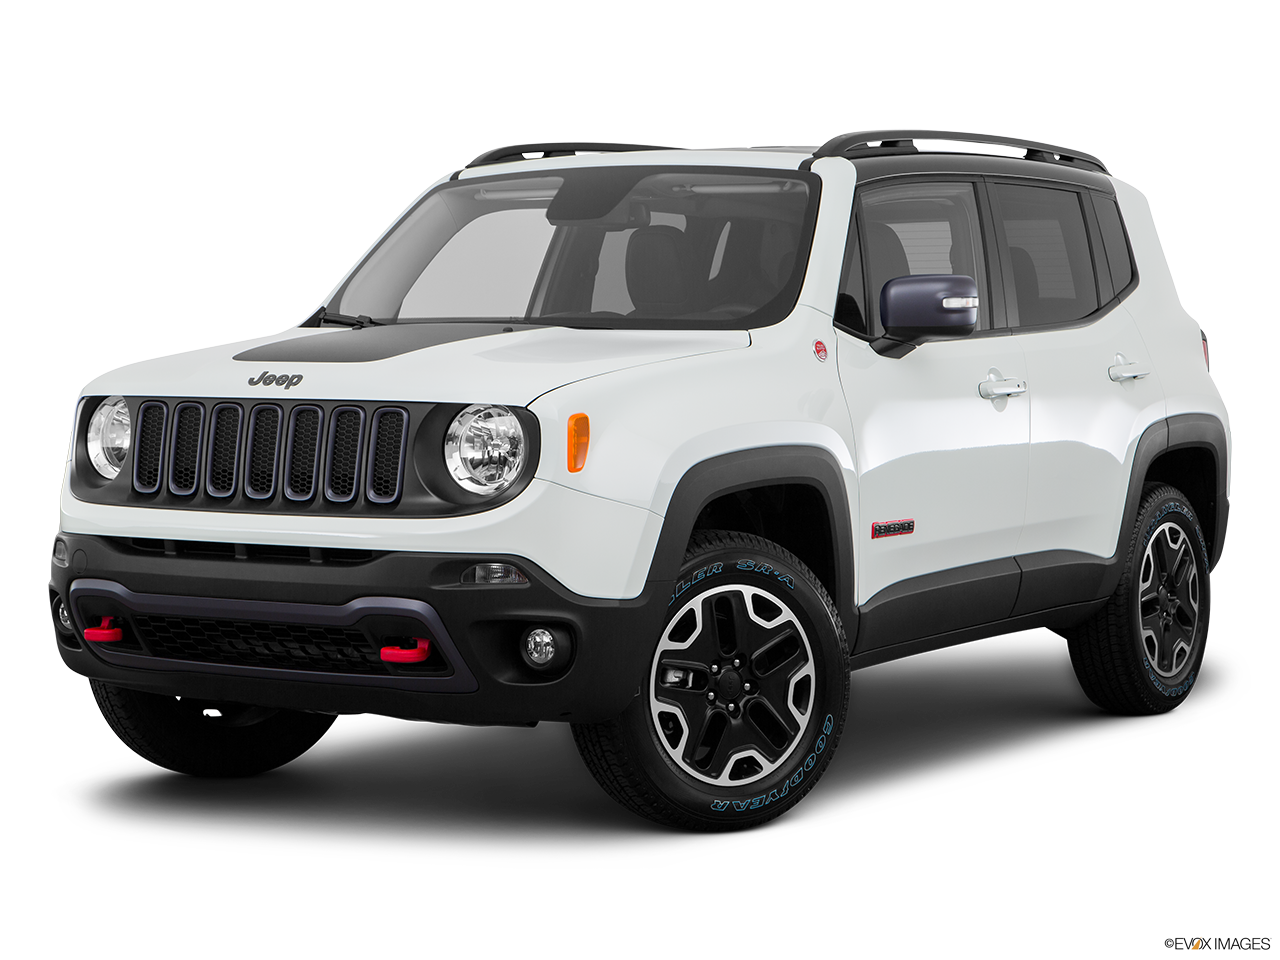 Test Drive A 2016 Jeep Renegade at Carl Burger Dodge Chrysler Jeep Ram World in La Mesa